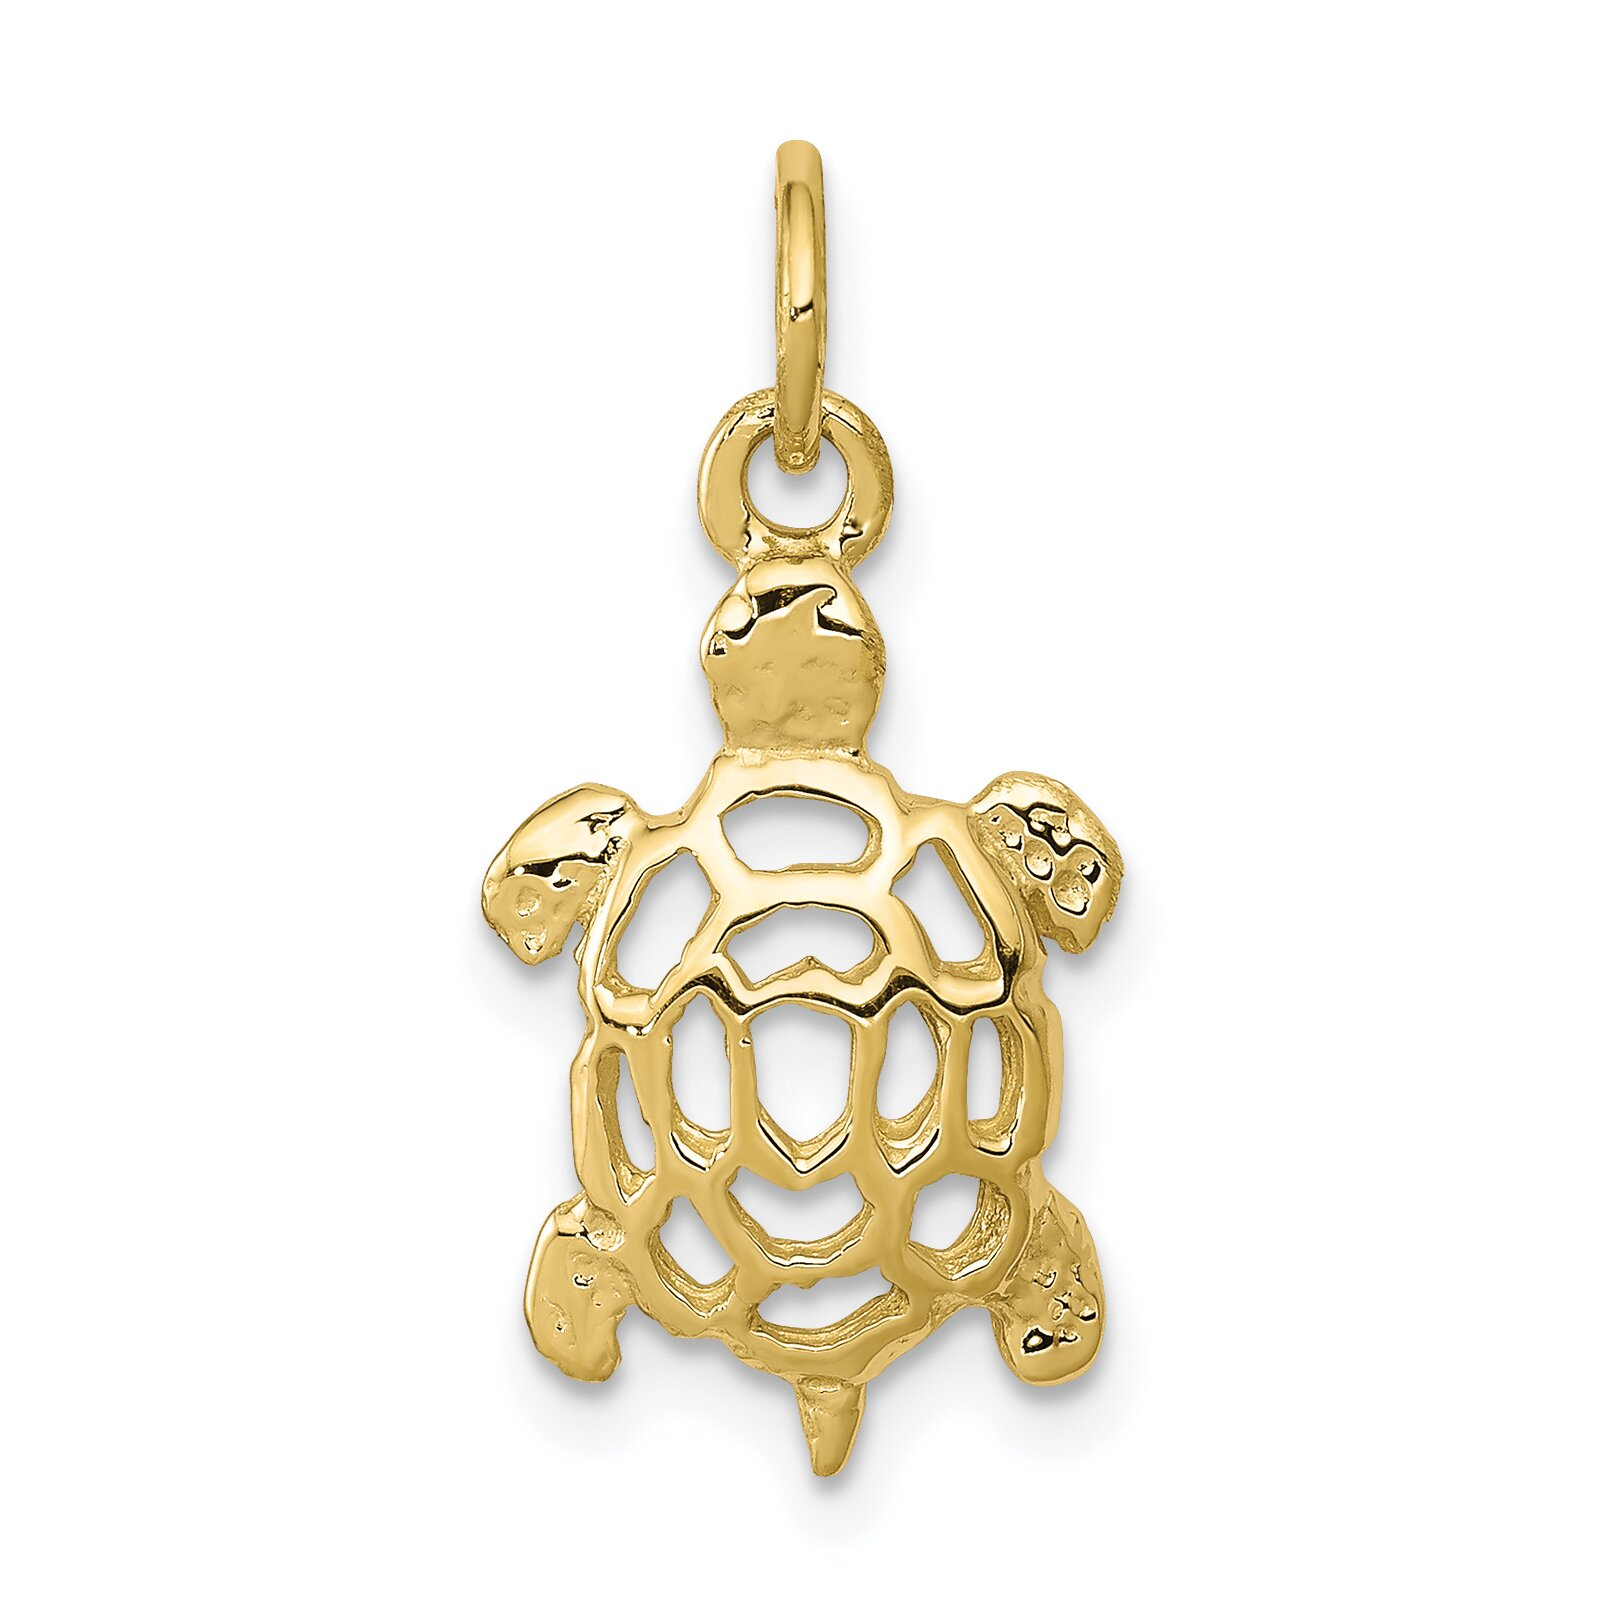 10k yellow gold turtle charm sea jewelry findingking ebay